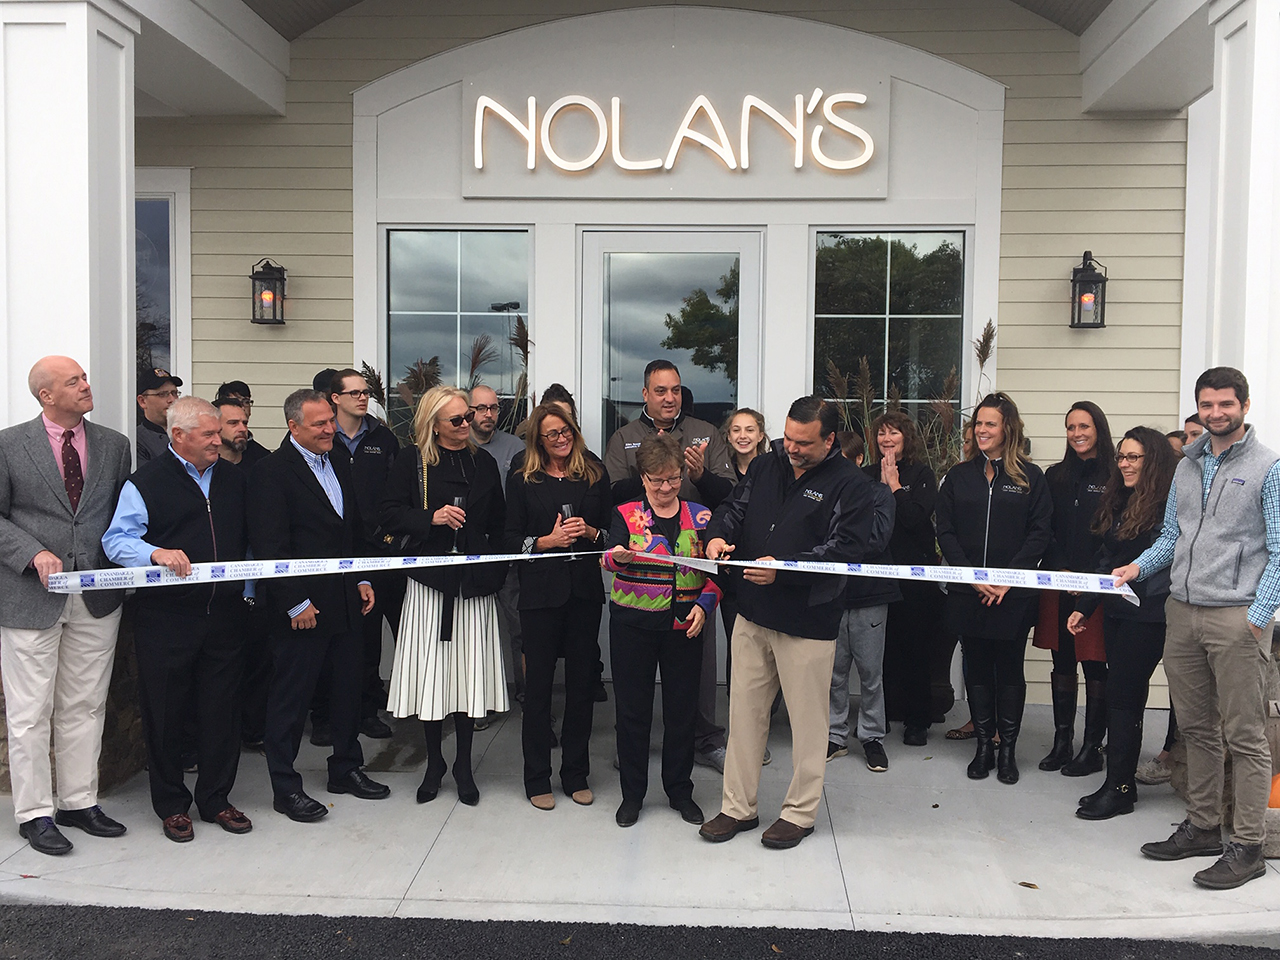 Nolan's on Canandaigua Lake returns to serve the community